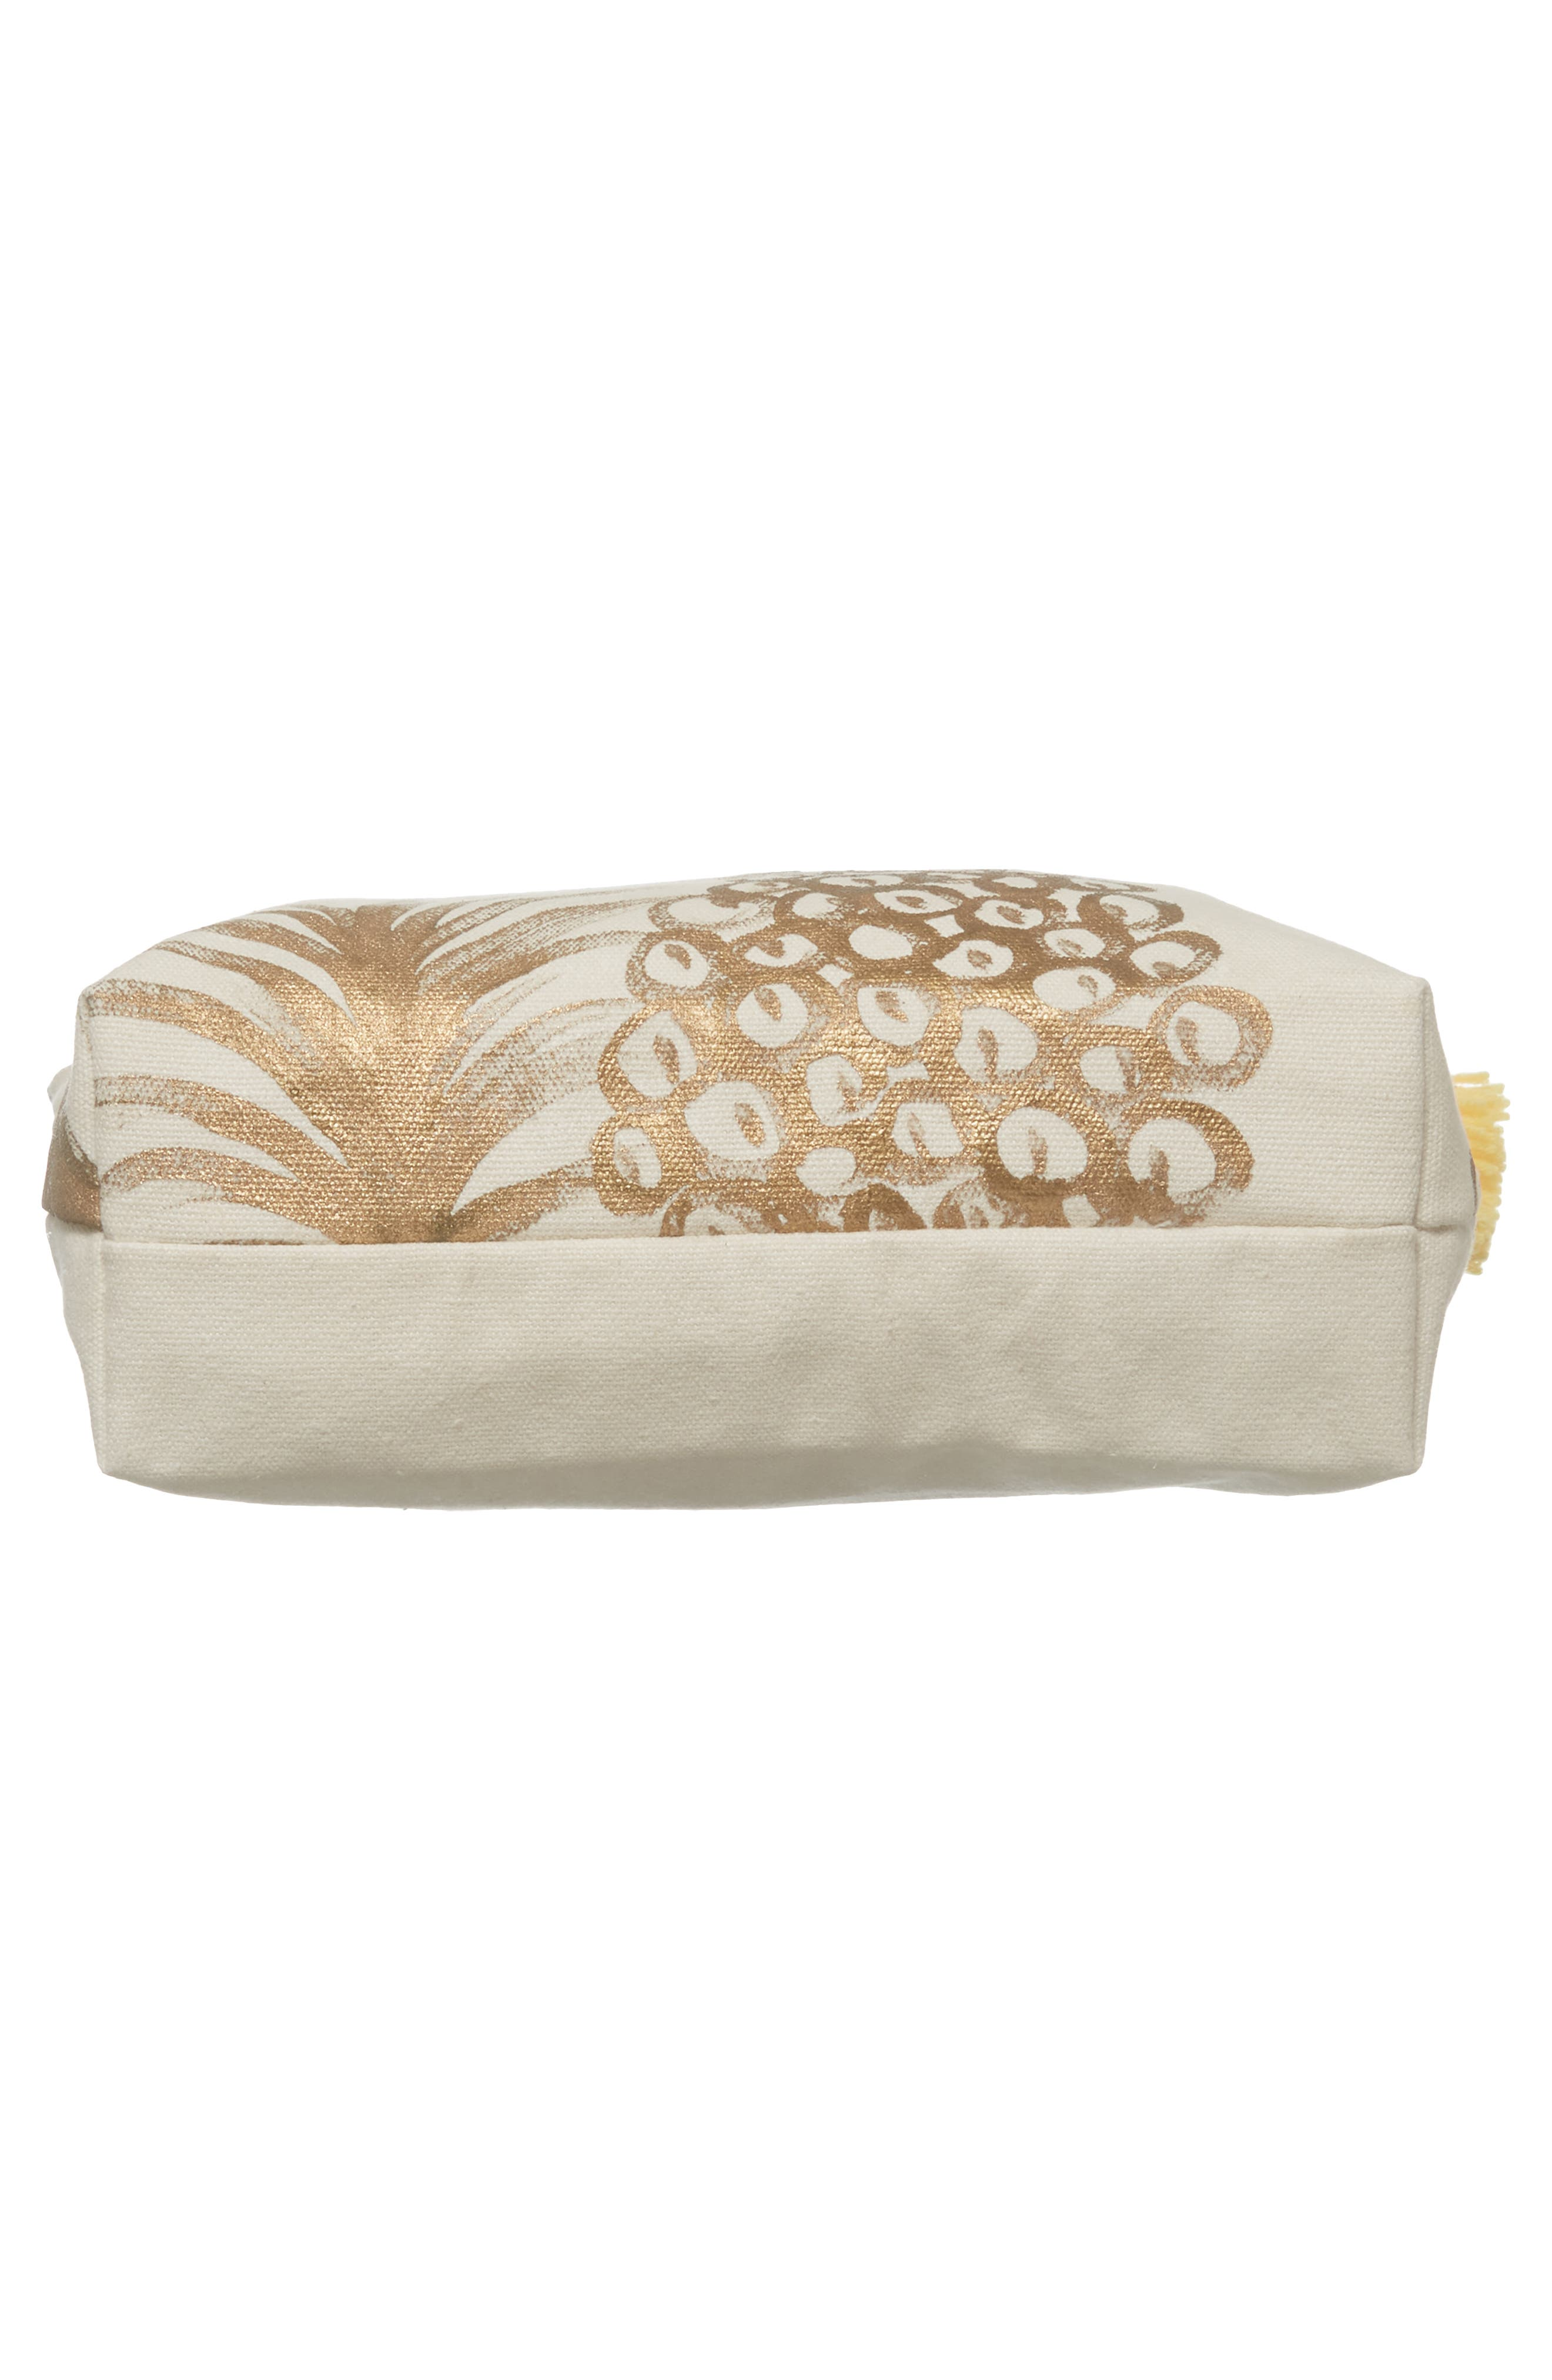 Tropicana Tassel Cosmetic Pouch,                             Alternate thumbnail 5, color,                             Gold